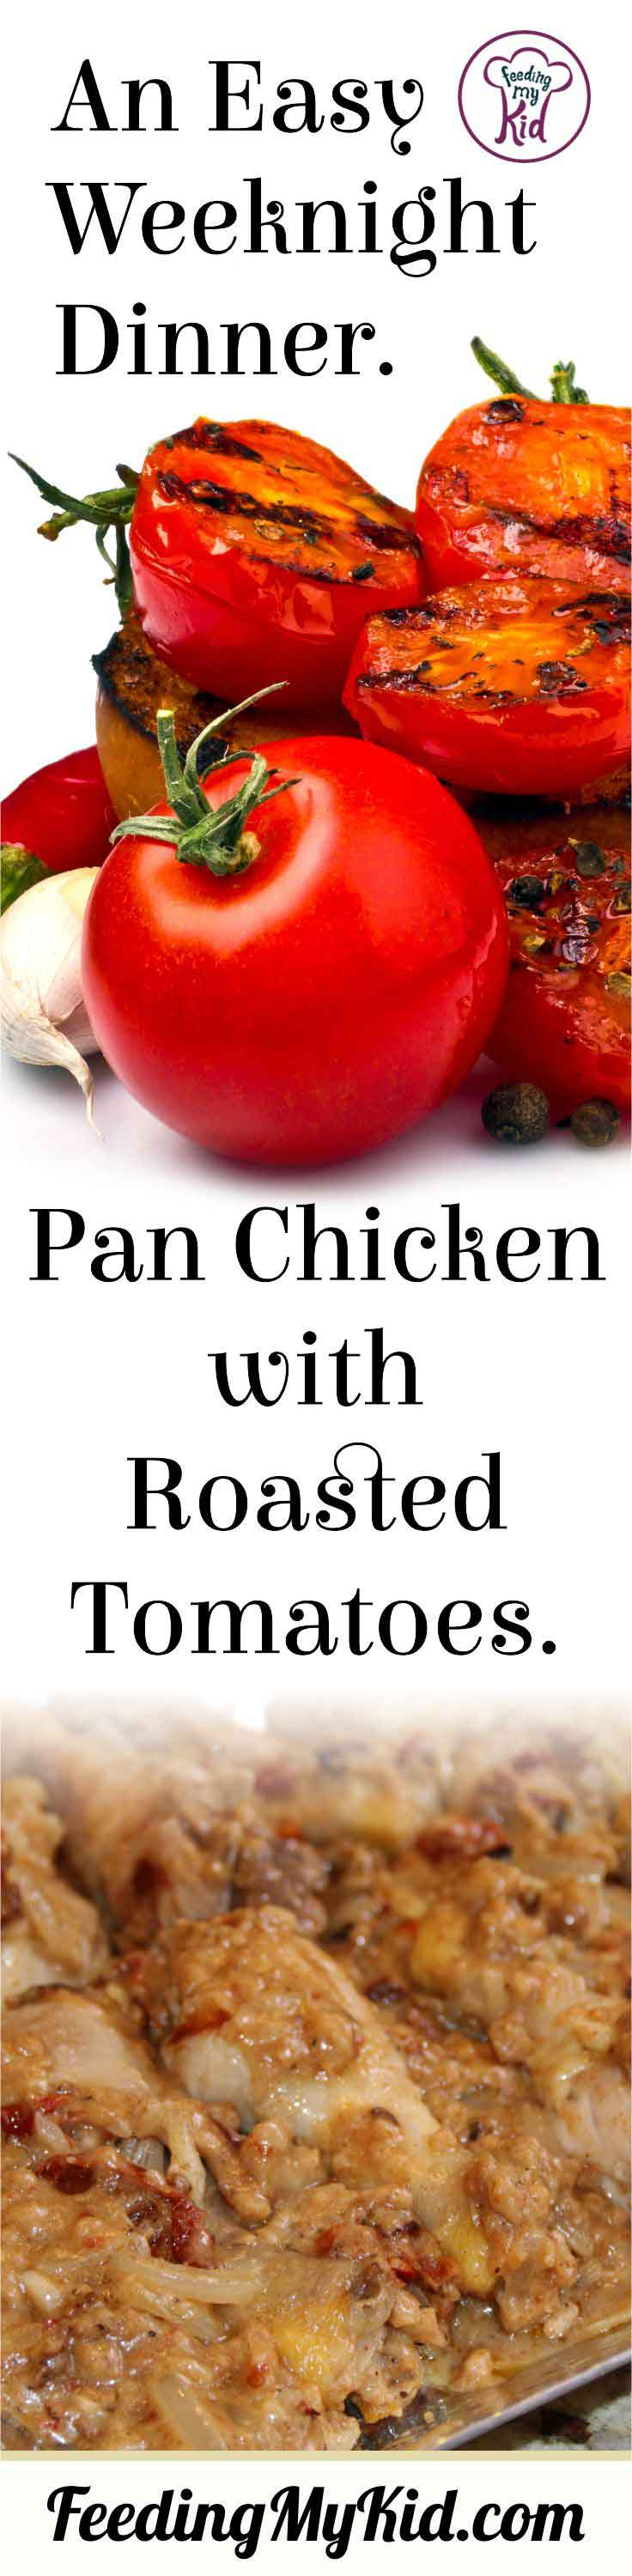 Making this pan cooked chicken is so easy and quick. You'll have a fast and filling meal for your family in 40 minutes! Try this one out.